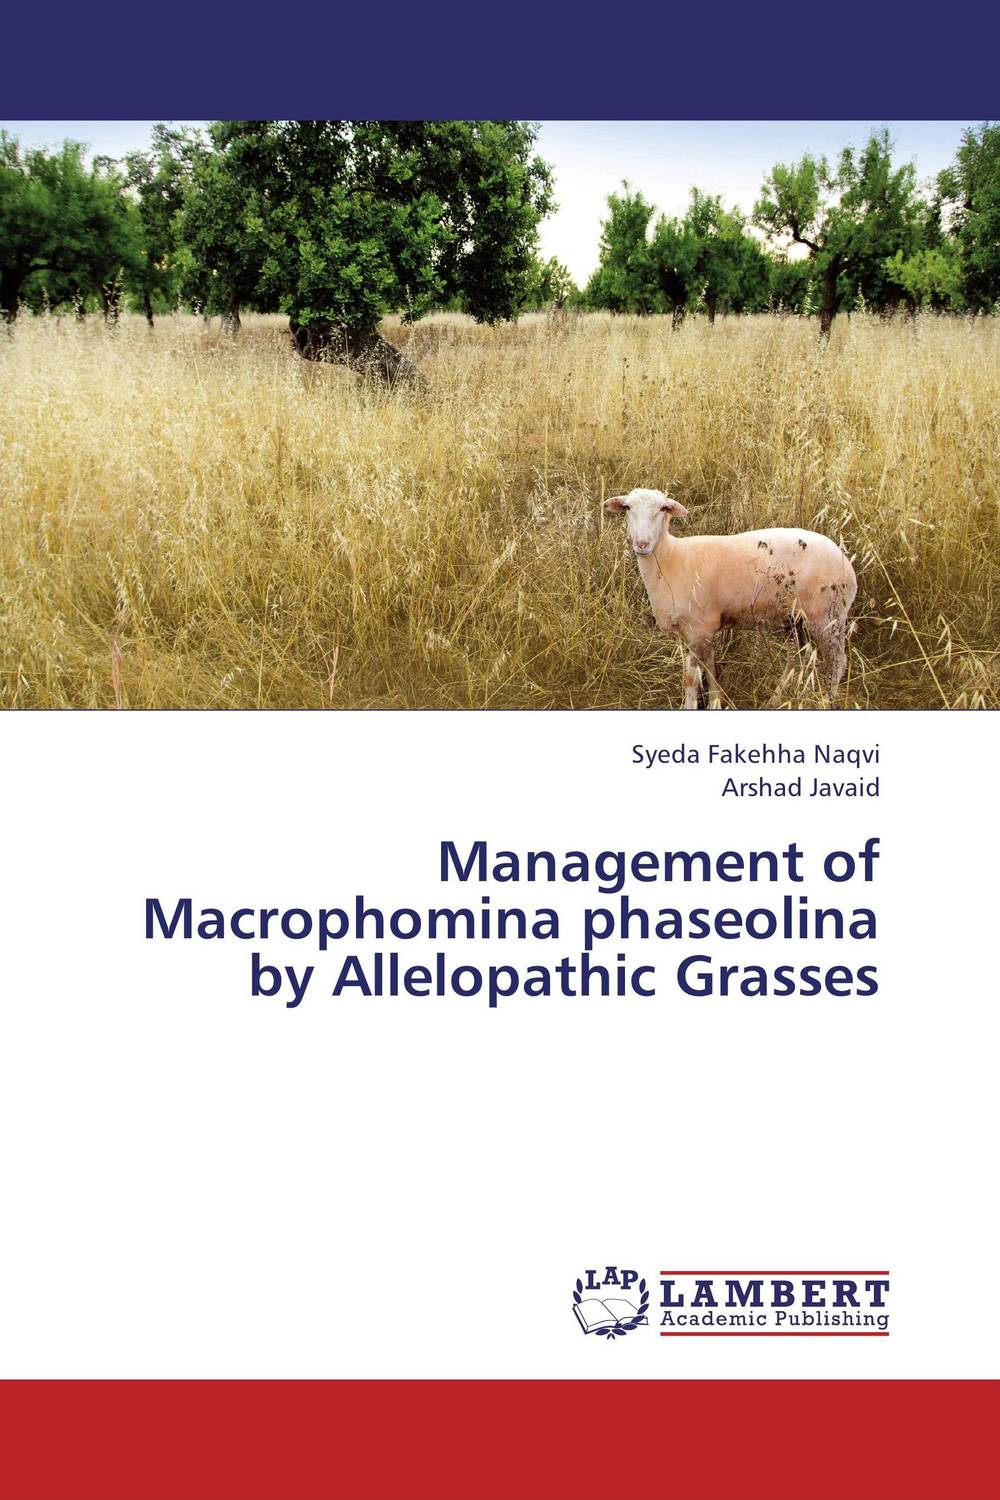 Management of Macrophomina phaseolina by Allelopathic Grasses h n gour pankaj sharma and rakesh kaushal pathological aspects and management of root rot of groundnut